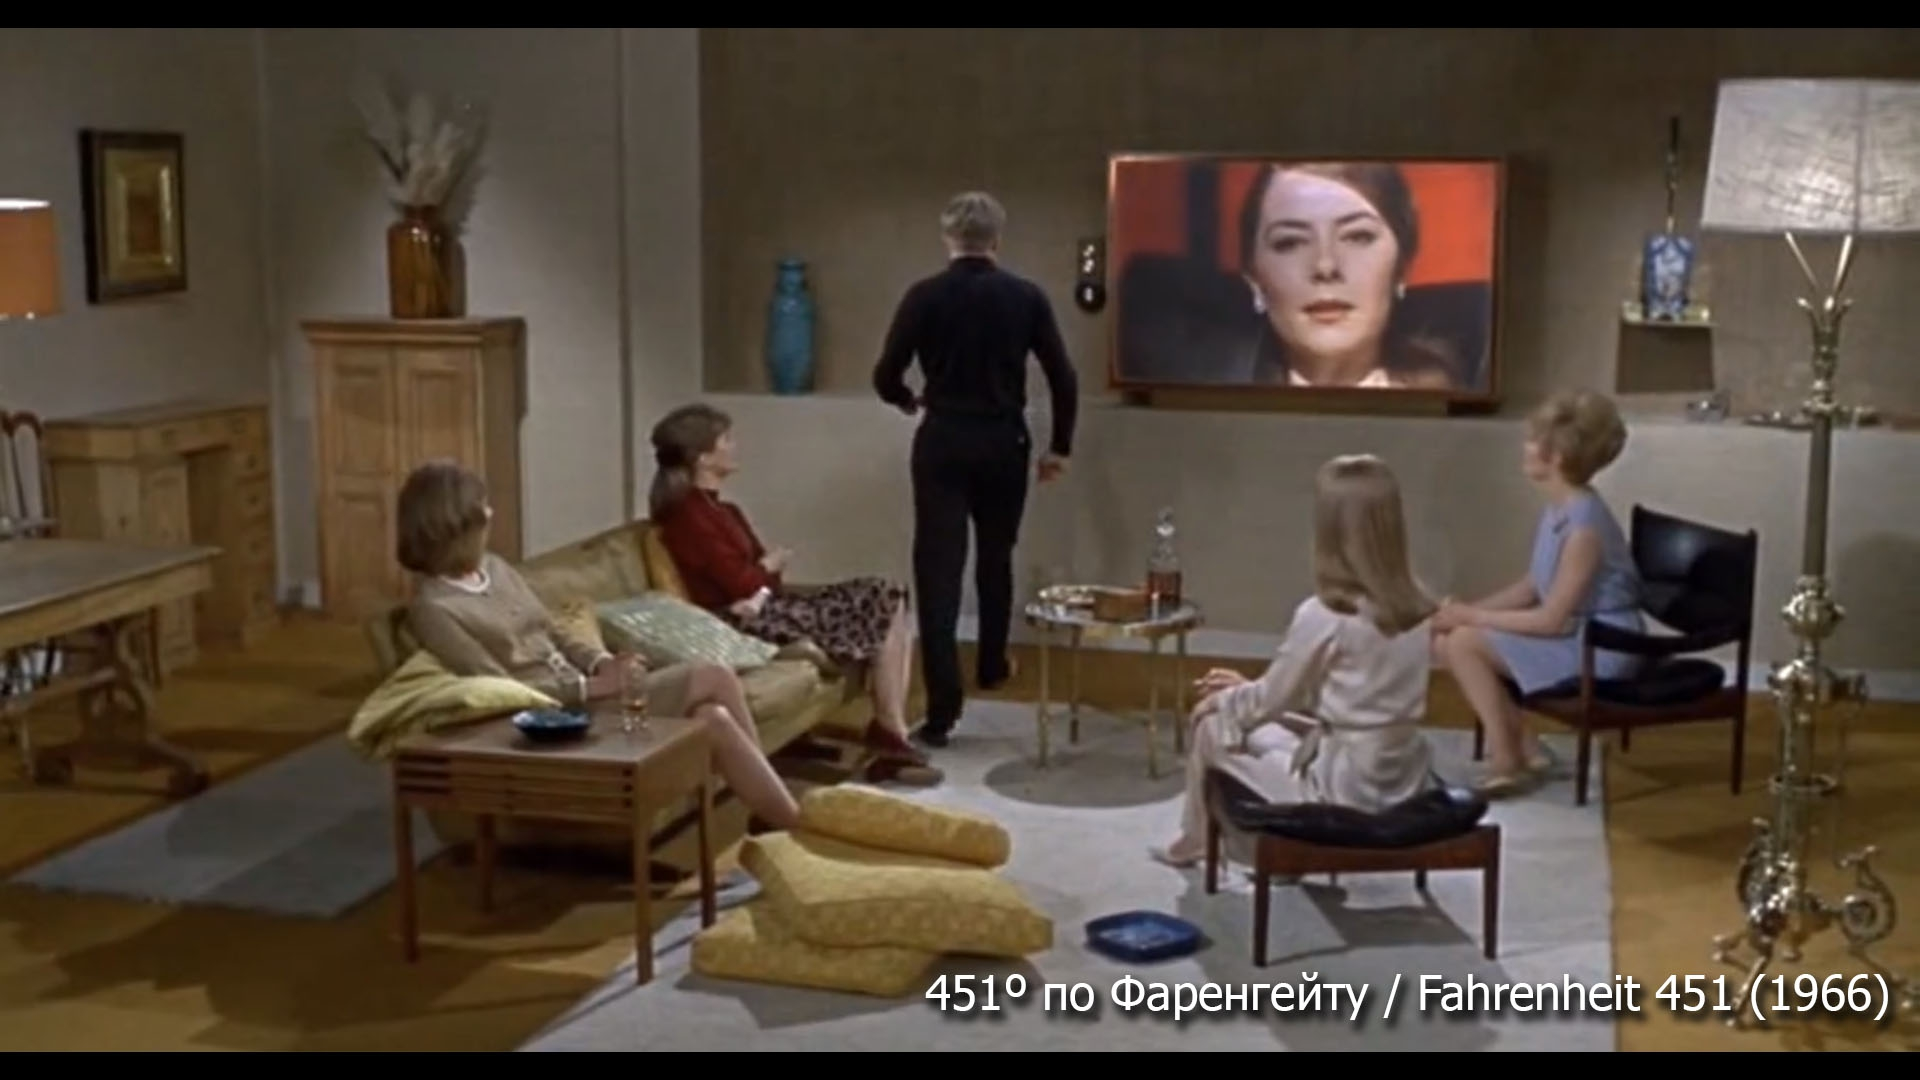 the film fahrenheit 451 essay The film fahrenheit 451 has many clear differences from the book for example, the characters of faber and the mechanical hound are left out of the movie also, clarisse dies in the novel, but lives in the movie.